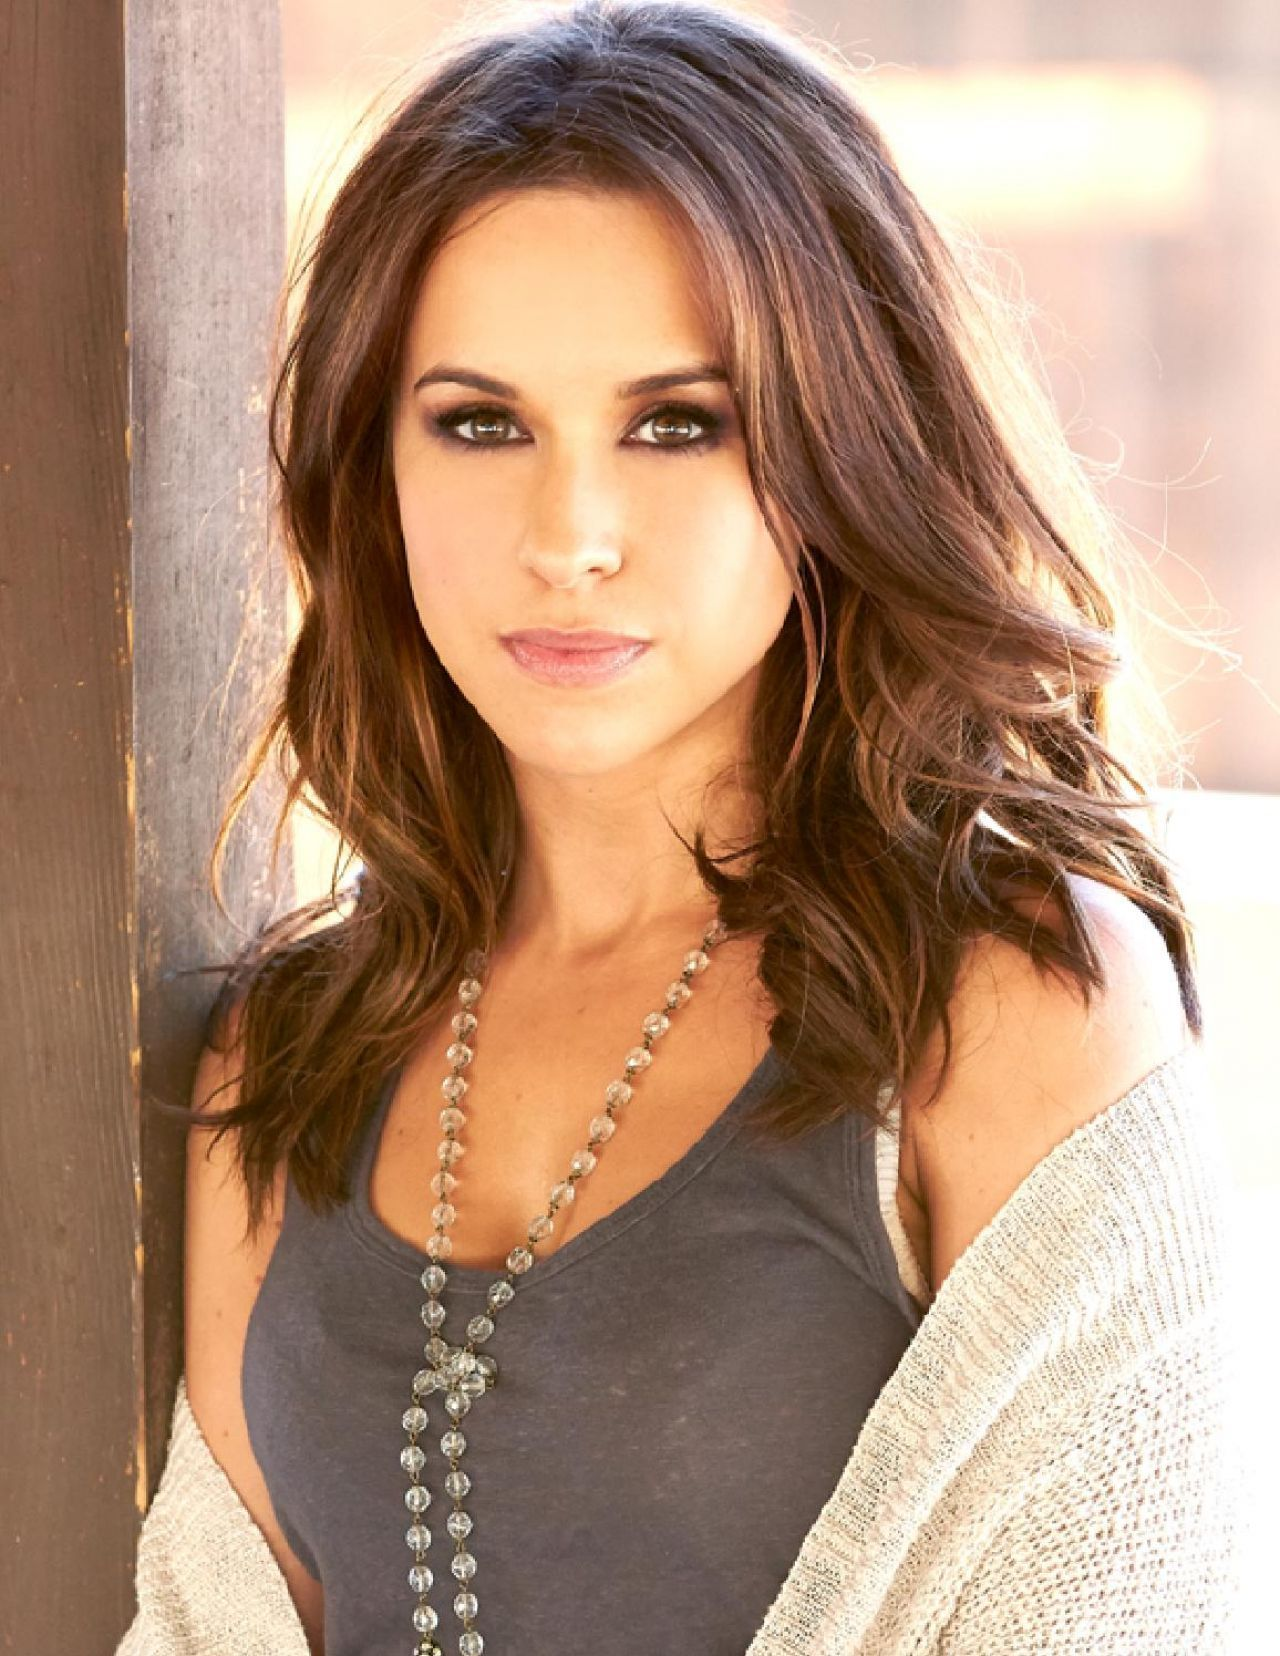 Lacey Chabert I told all the time this is who I look like